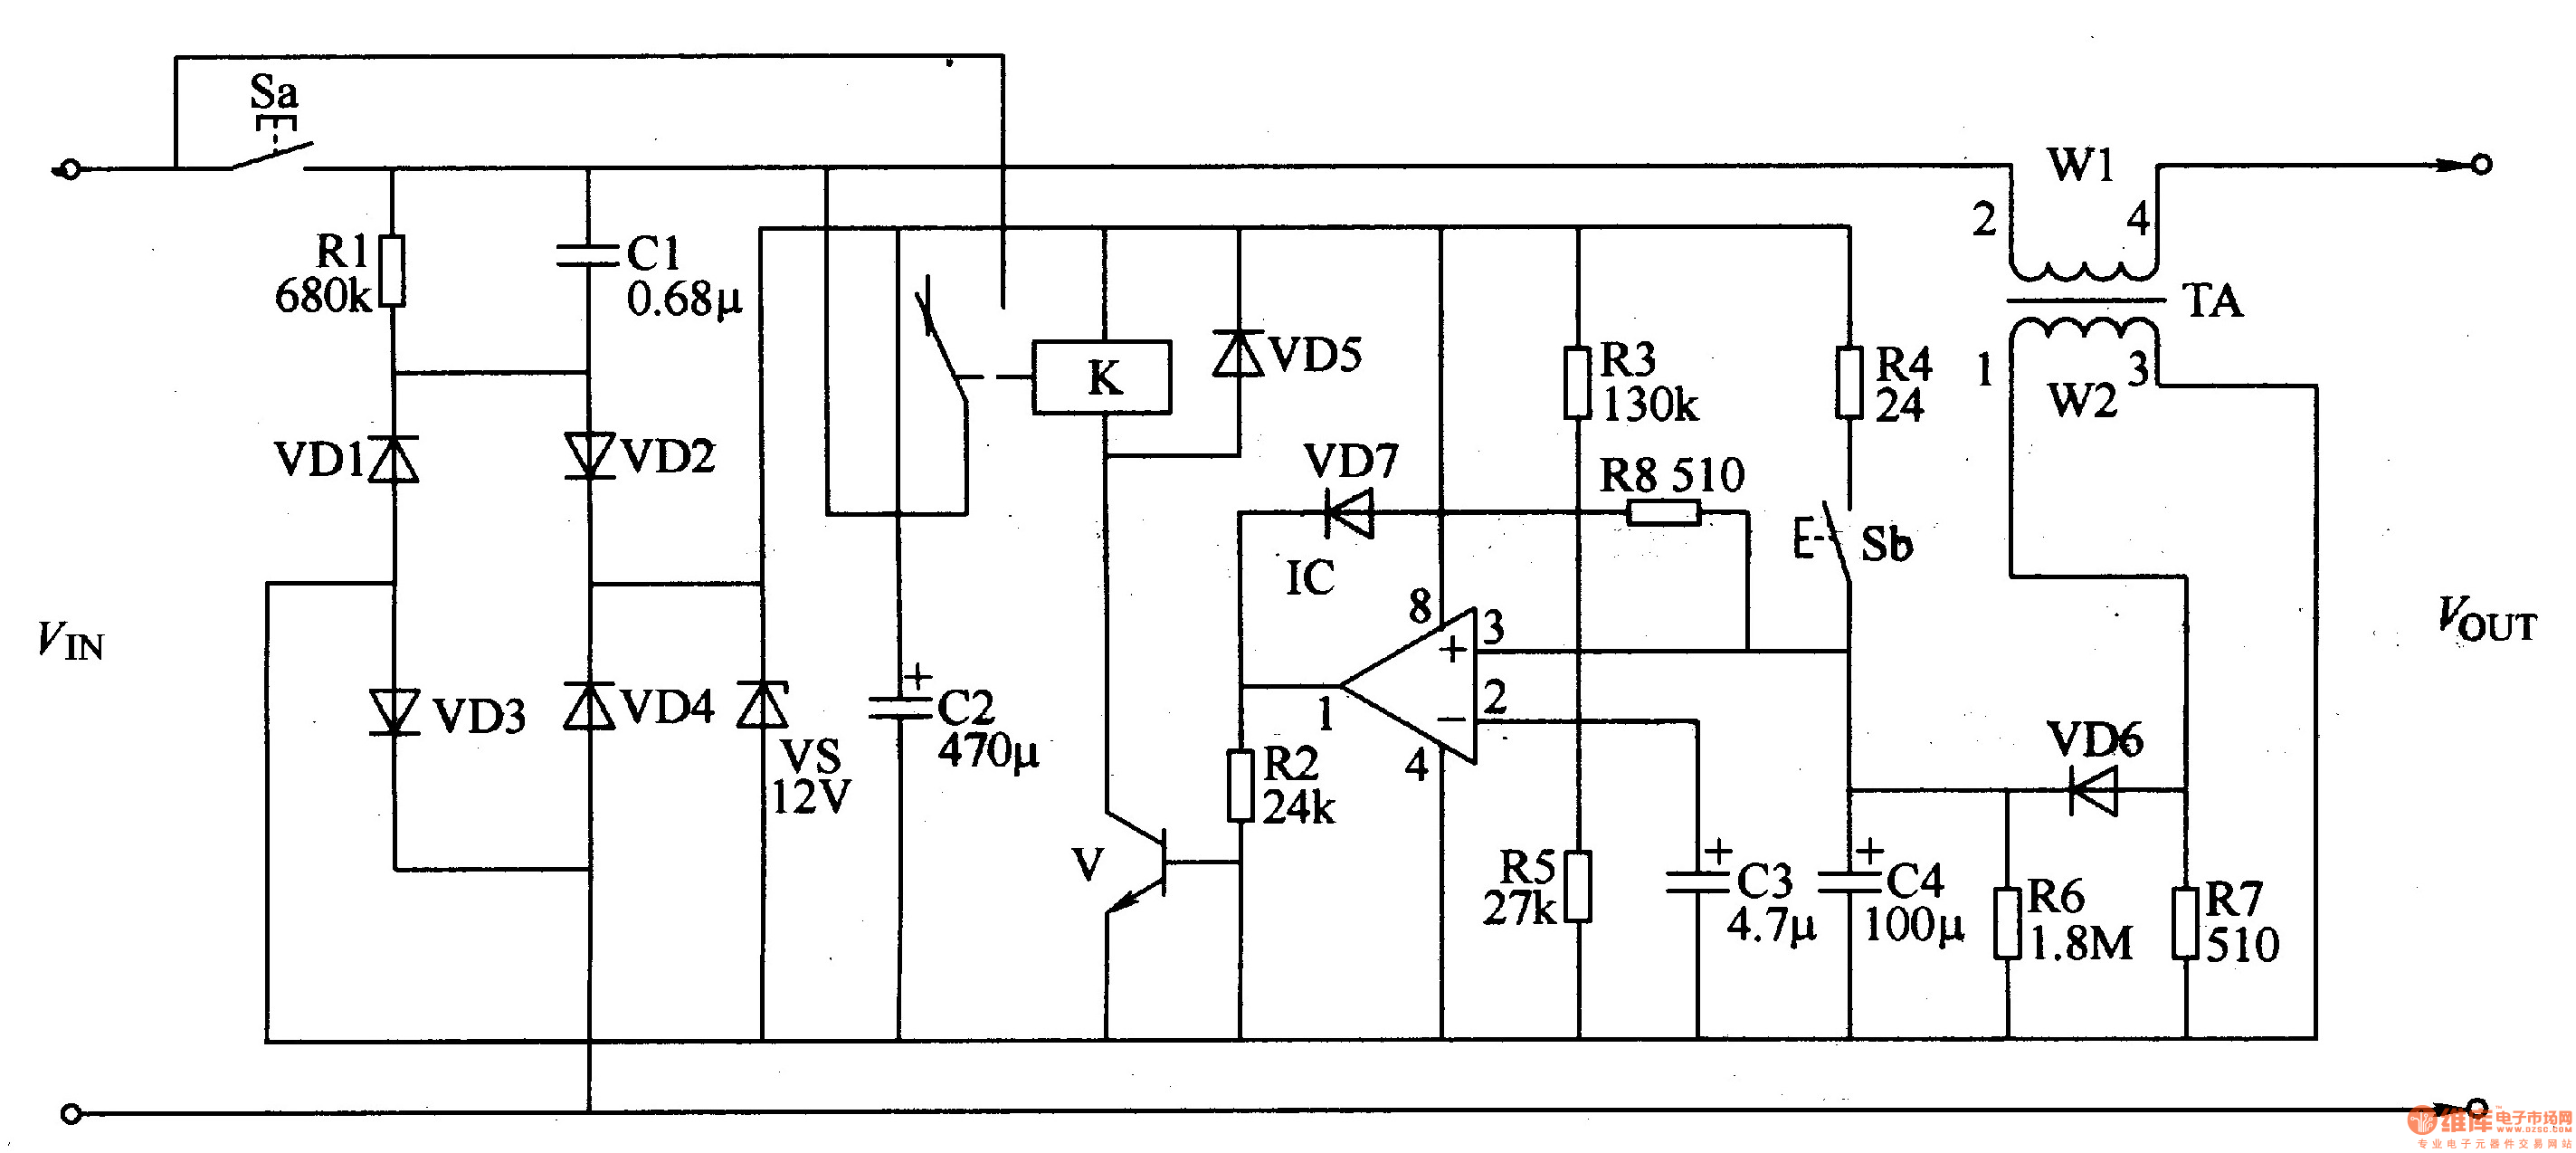 Microwave Turn Off Delay Device